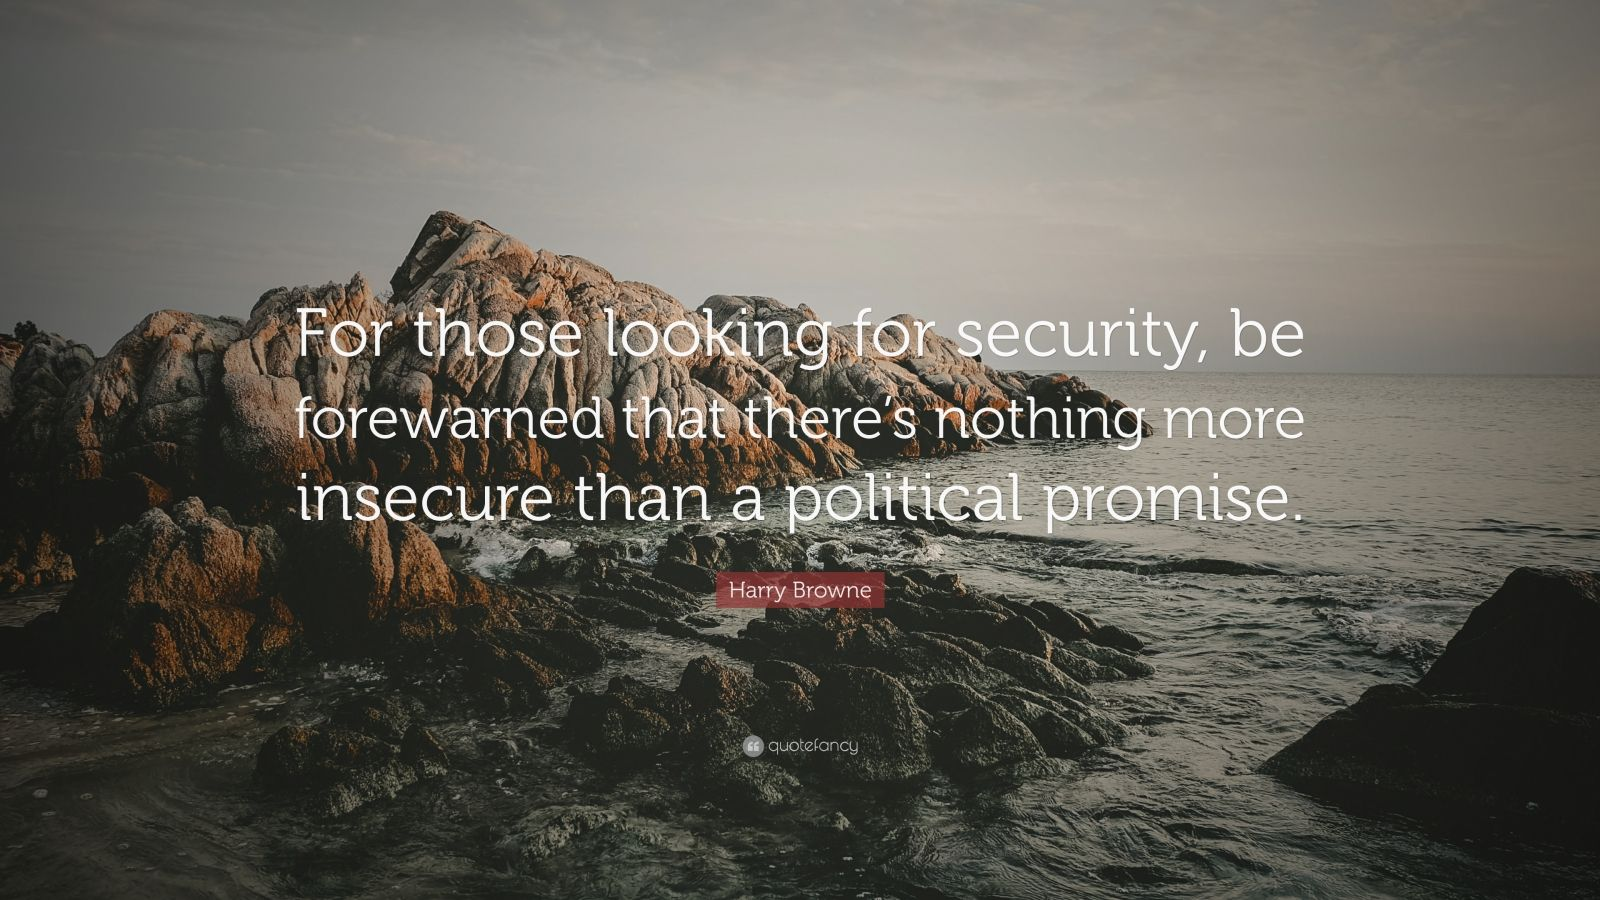 """Harry Browne Quote: """"For those looking for security, be forewarned that there's nothing more insecure than a political promise."""""""